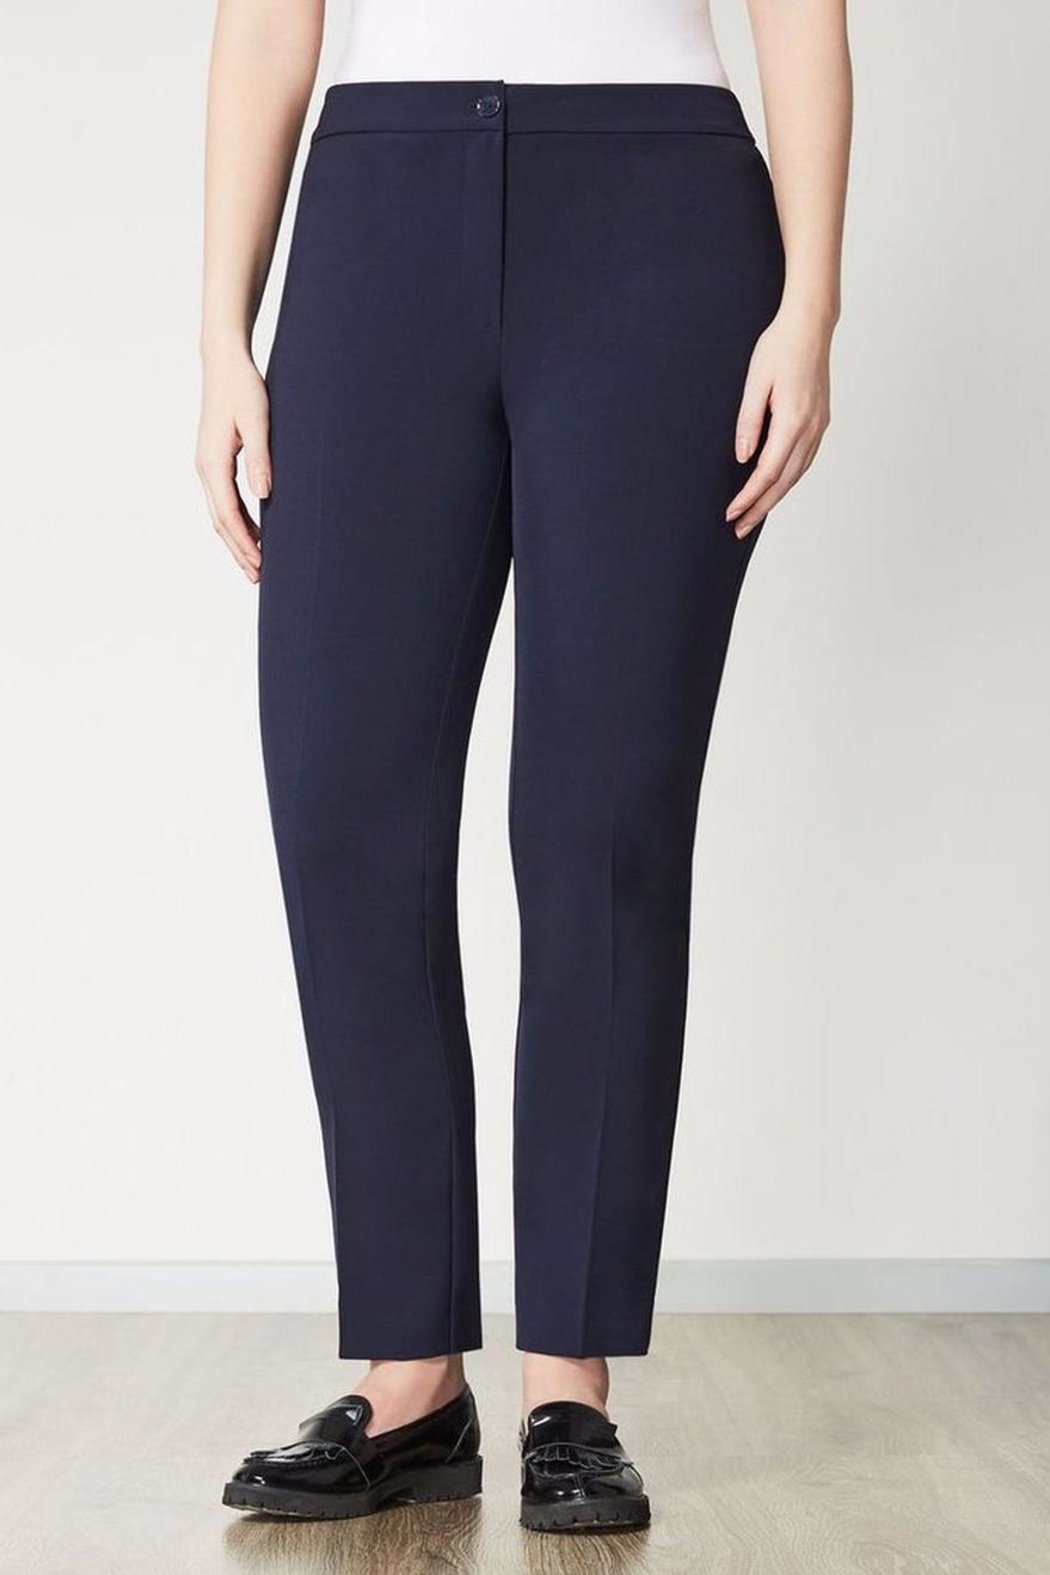 Persona by Marina Rinaldi Modern Cloth Pants - Main Image